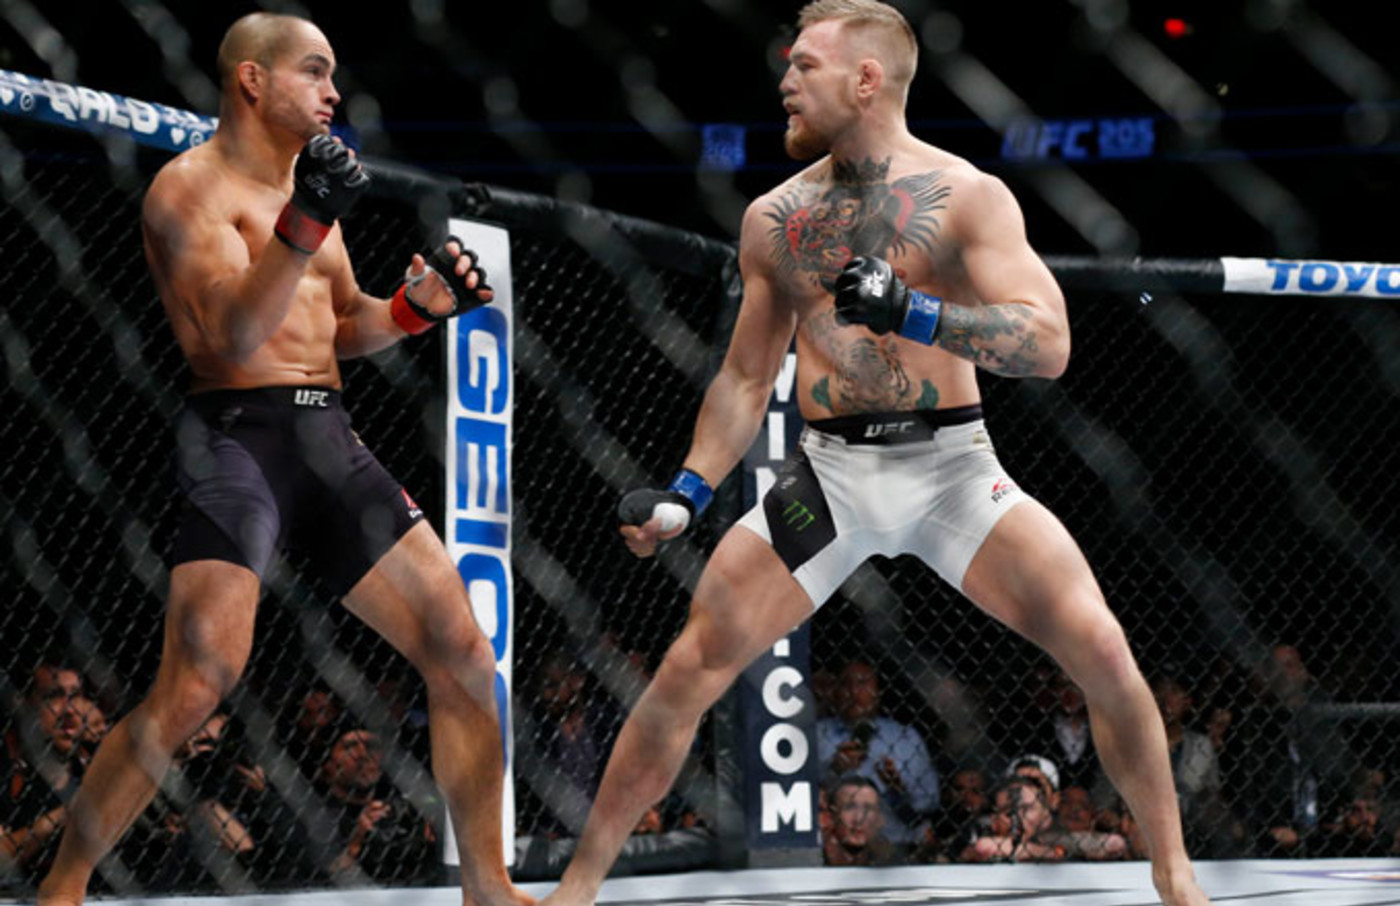 Conor McGregor (blue gloves) fights Eddie Alvarez (red gloves) in their lightweight title bout.